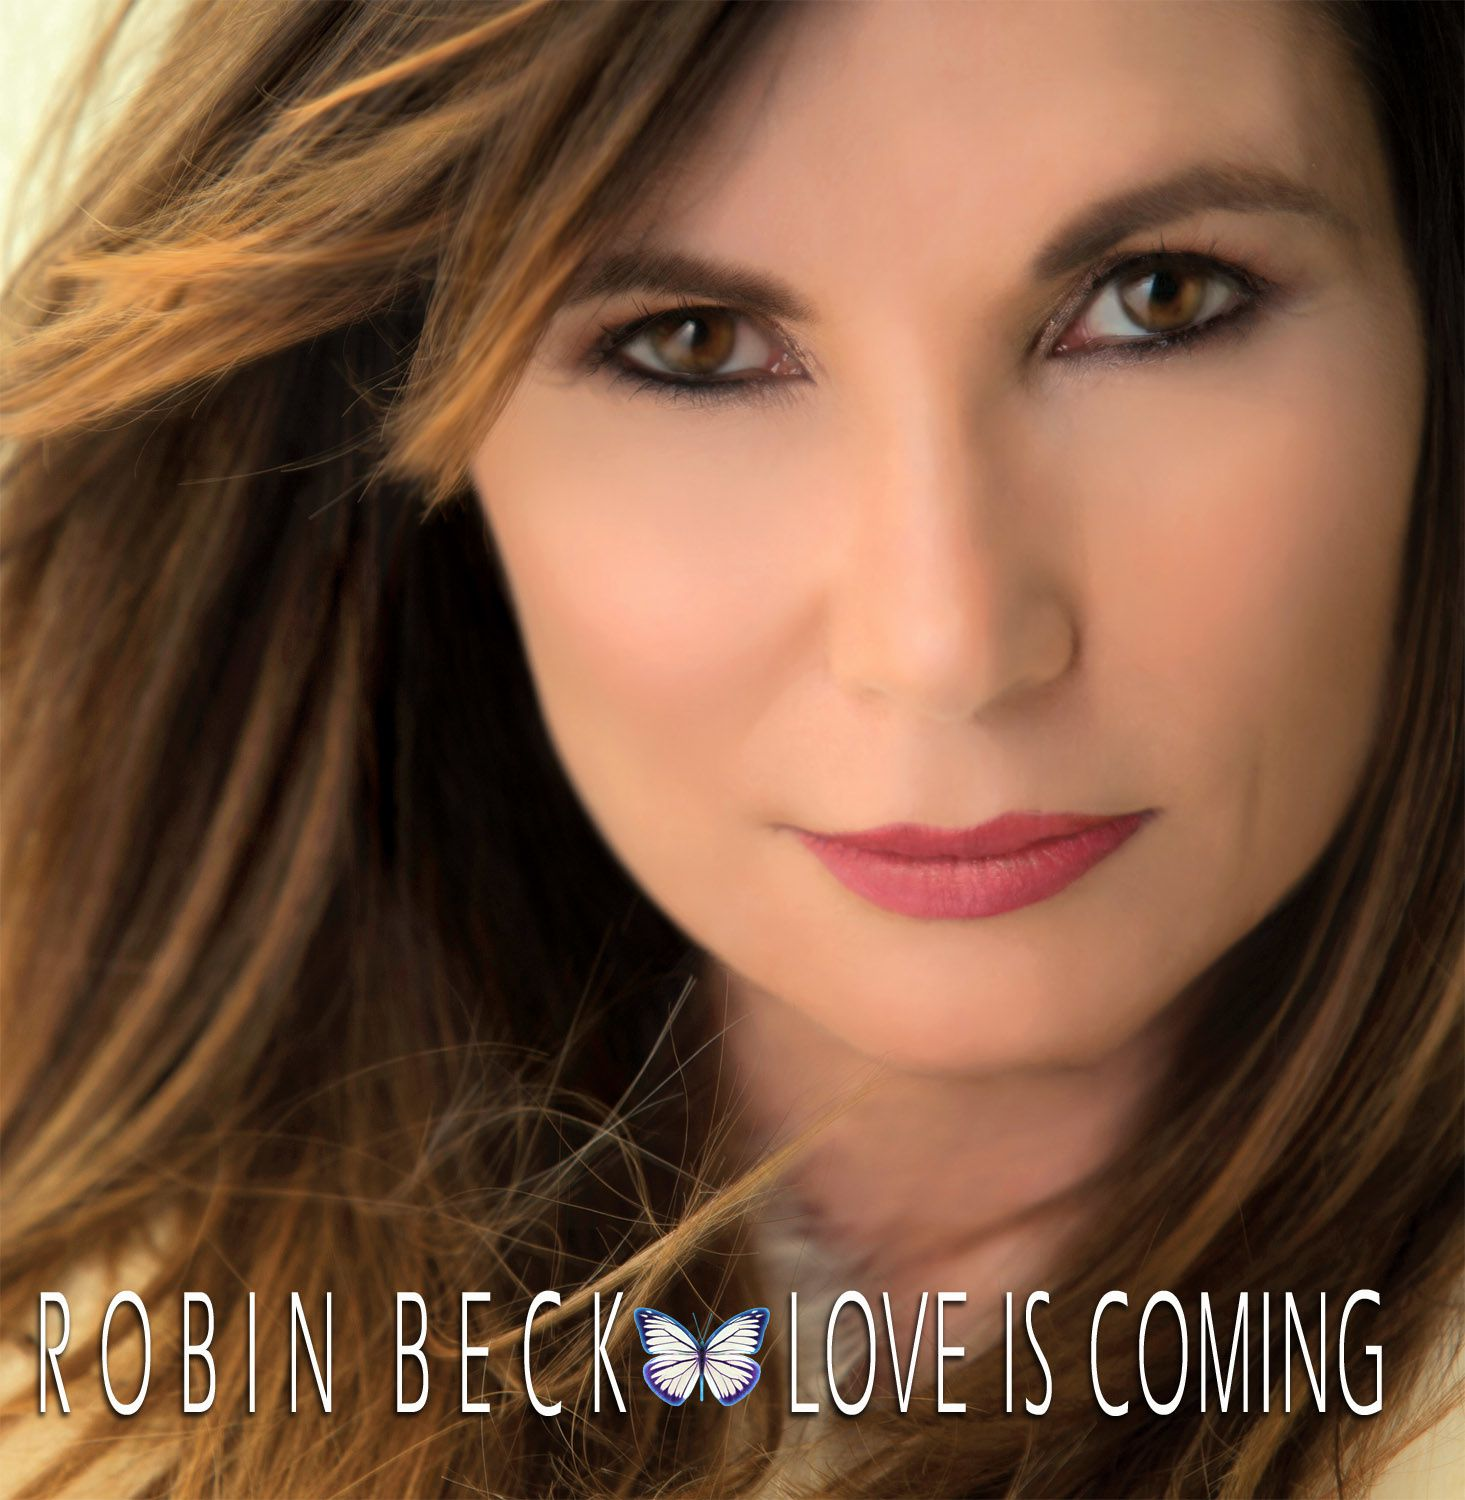 New song from ROBIN BECK's online